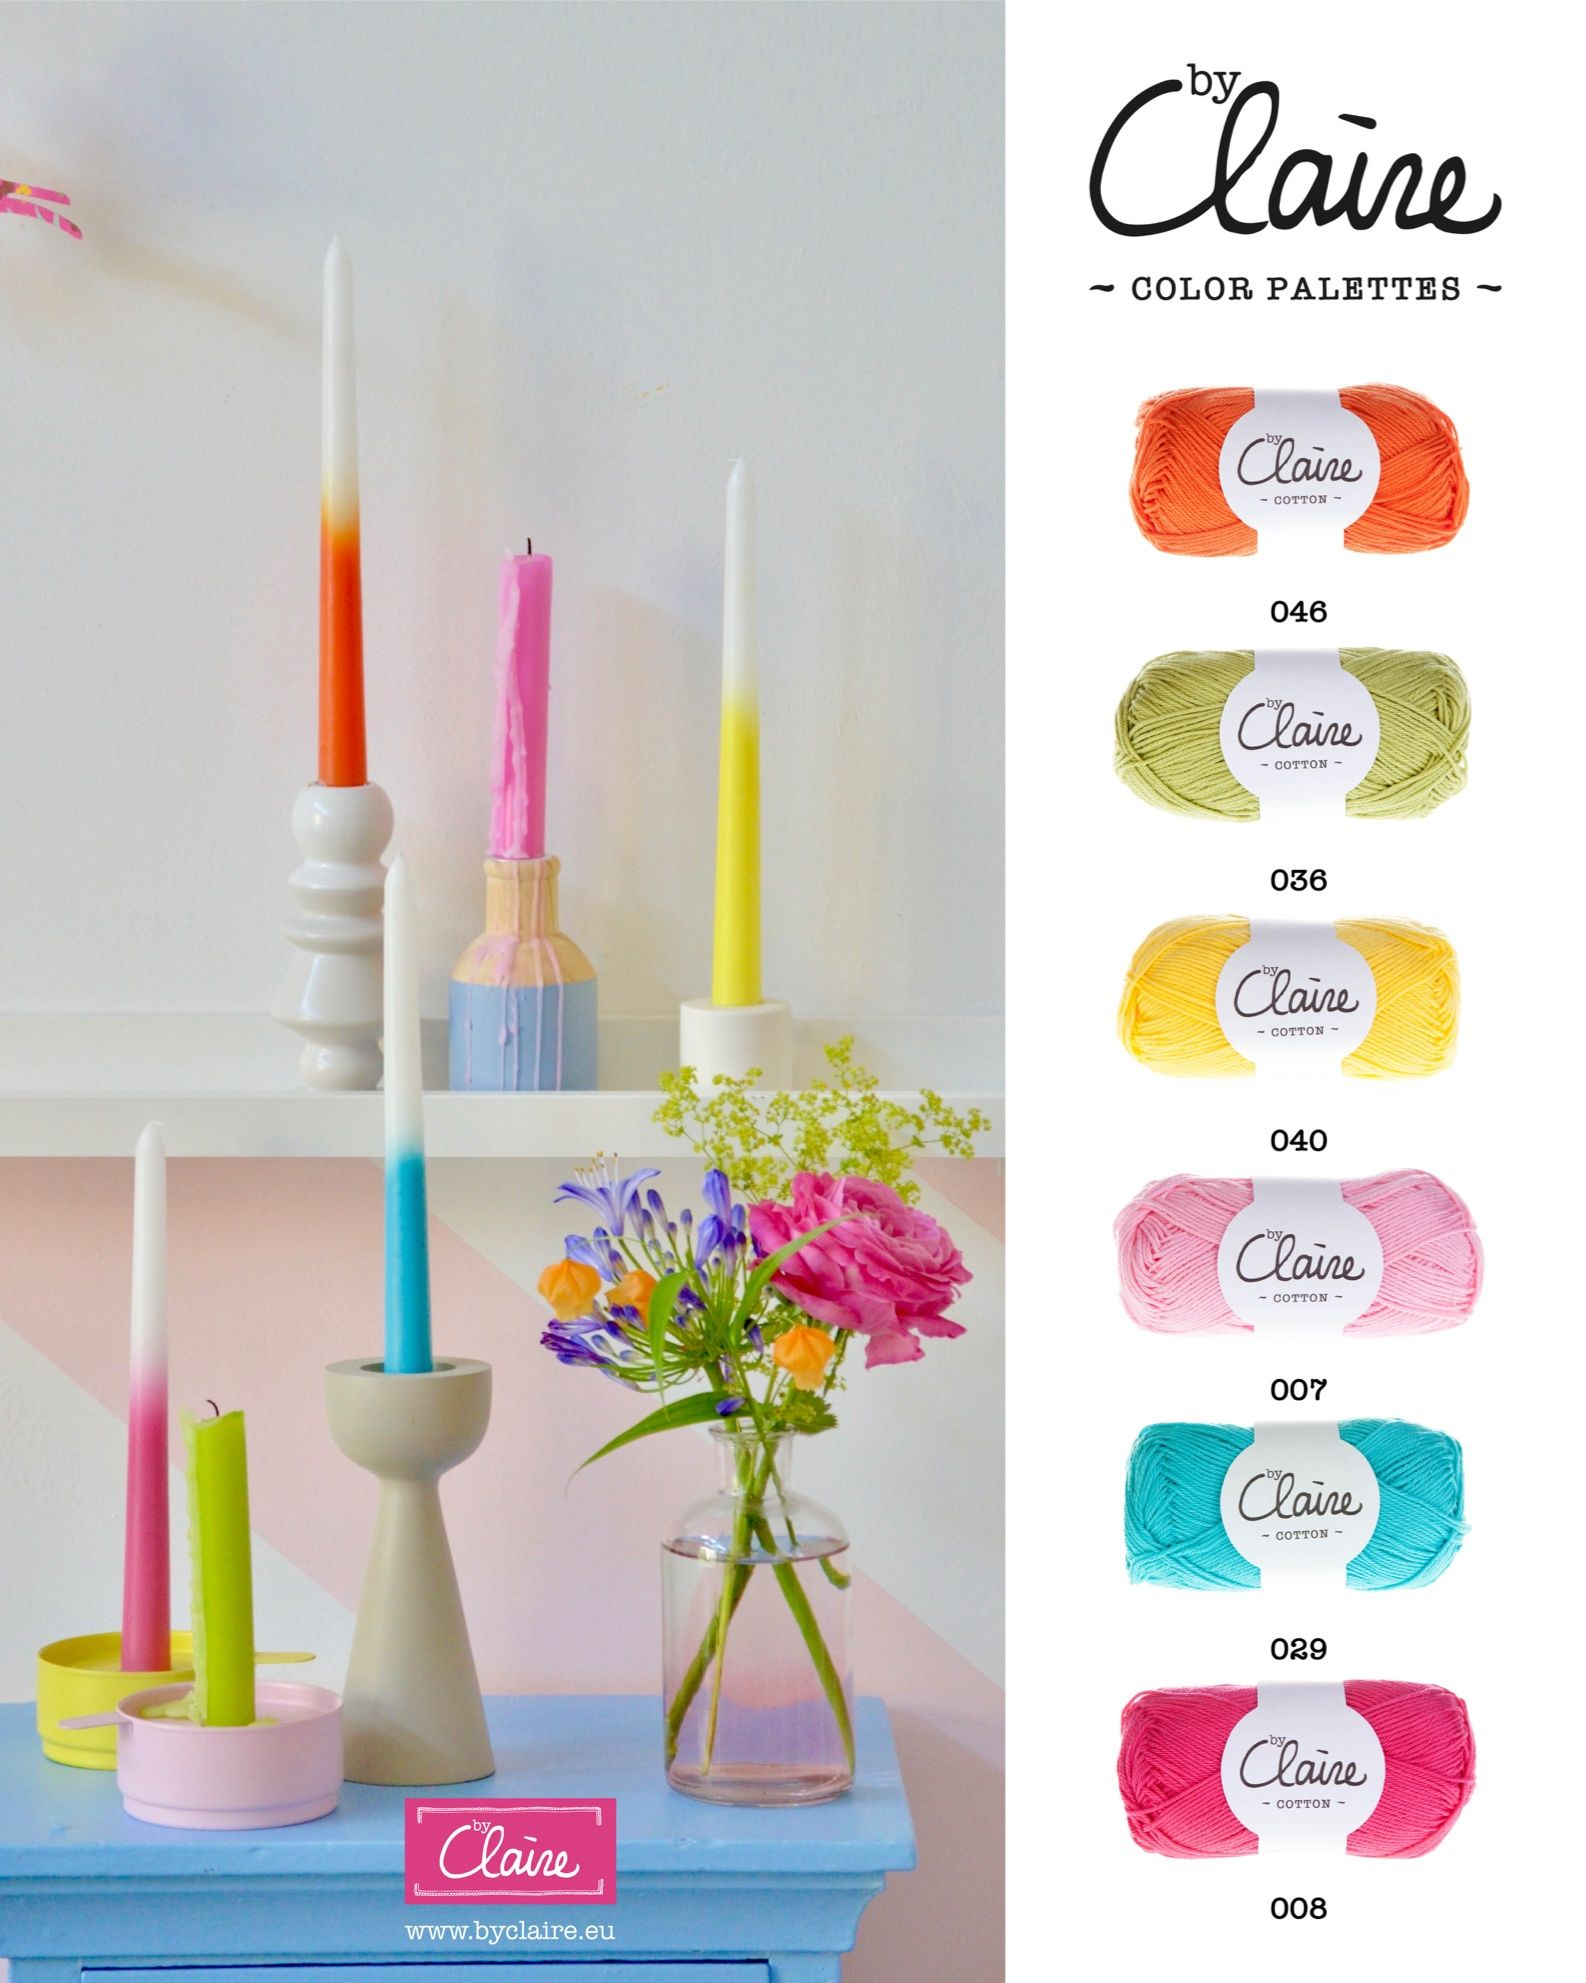 byClaire colorpalettes met byClaire garens - www.byclaire.eu